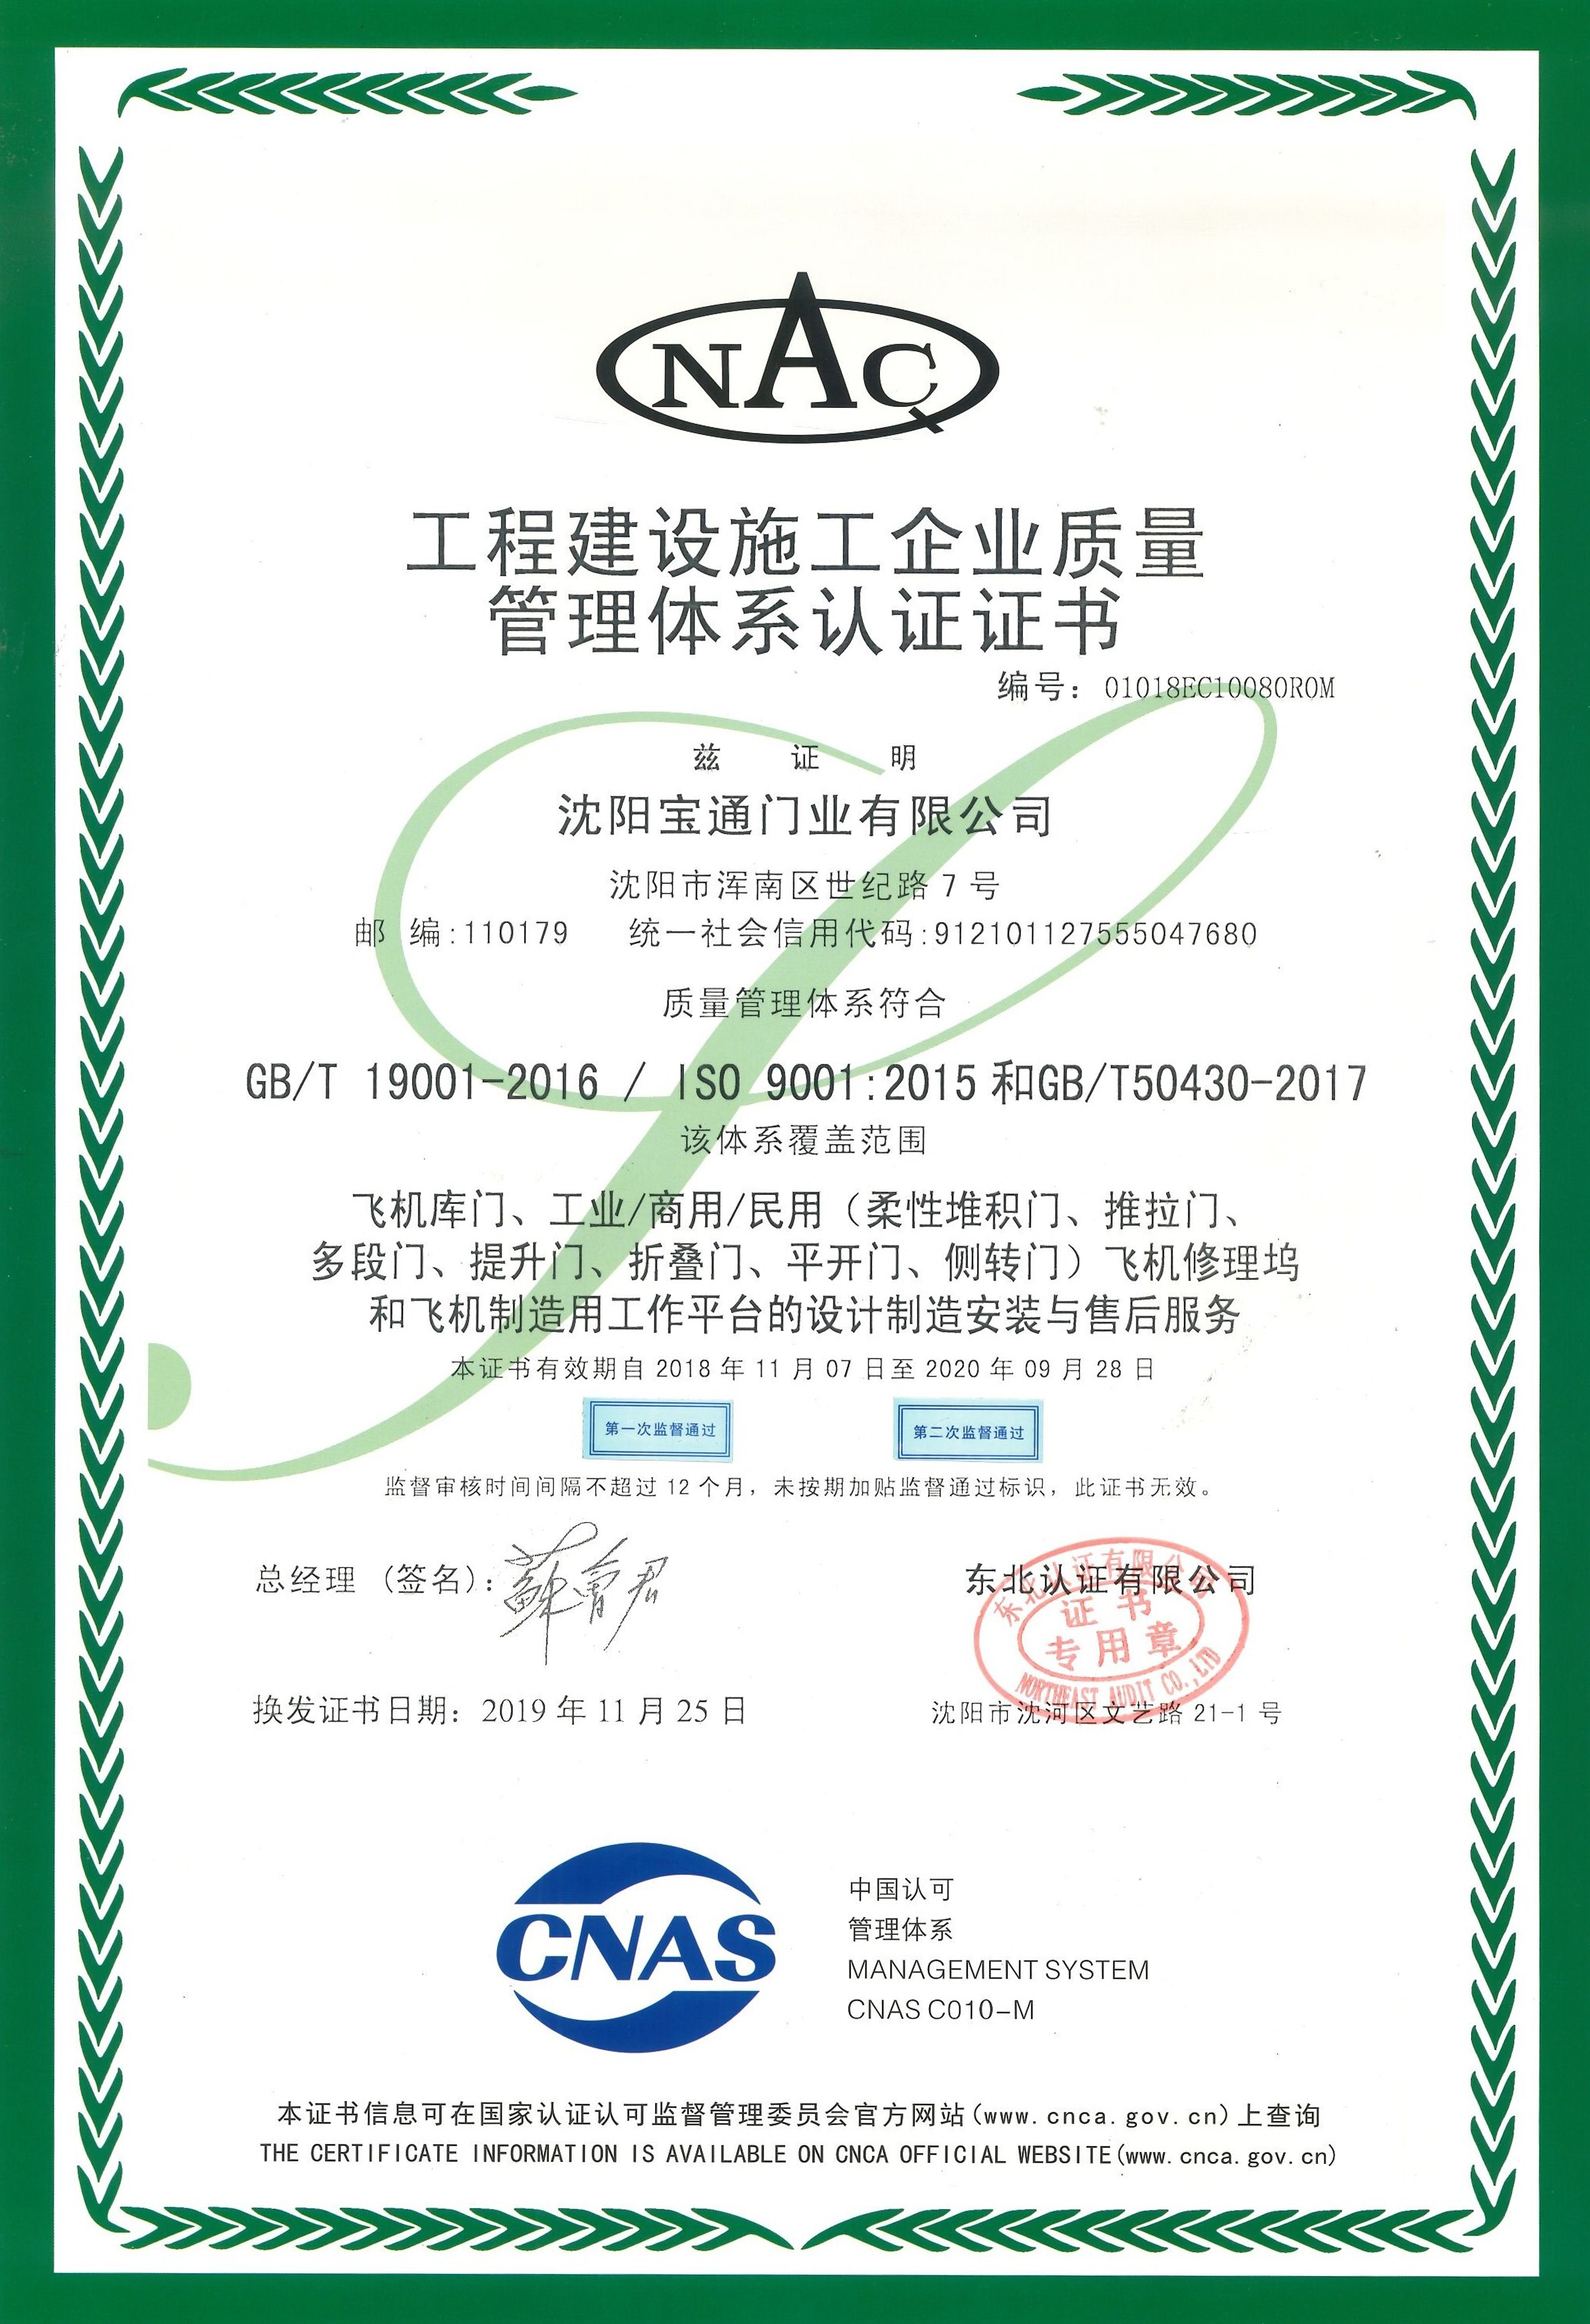 Certificate of Quality Management System for Engineering Construction Enterprise (Chinese)